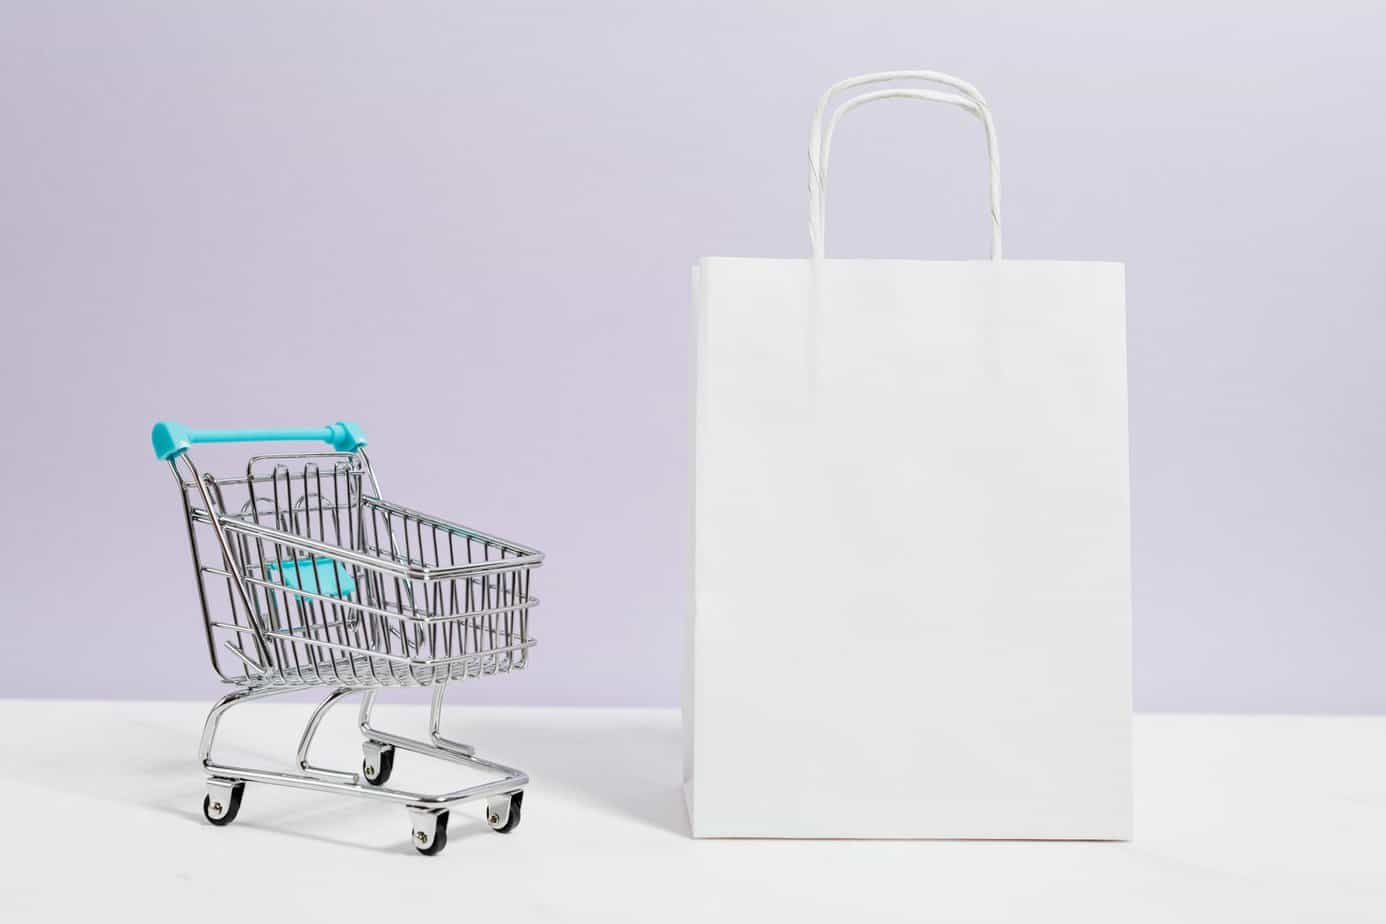 Use Remarketing to Recover Abandoned Carts